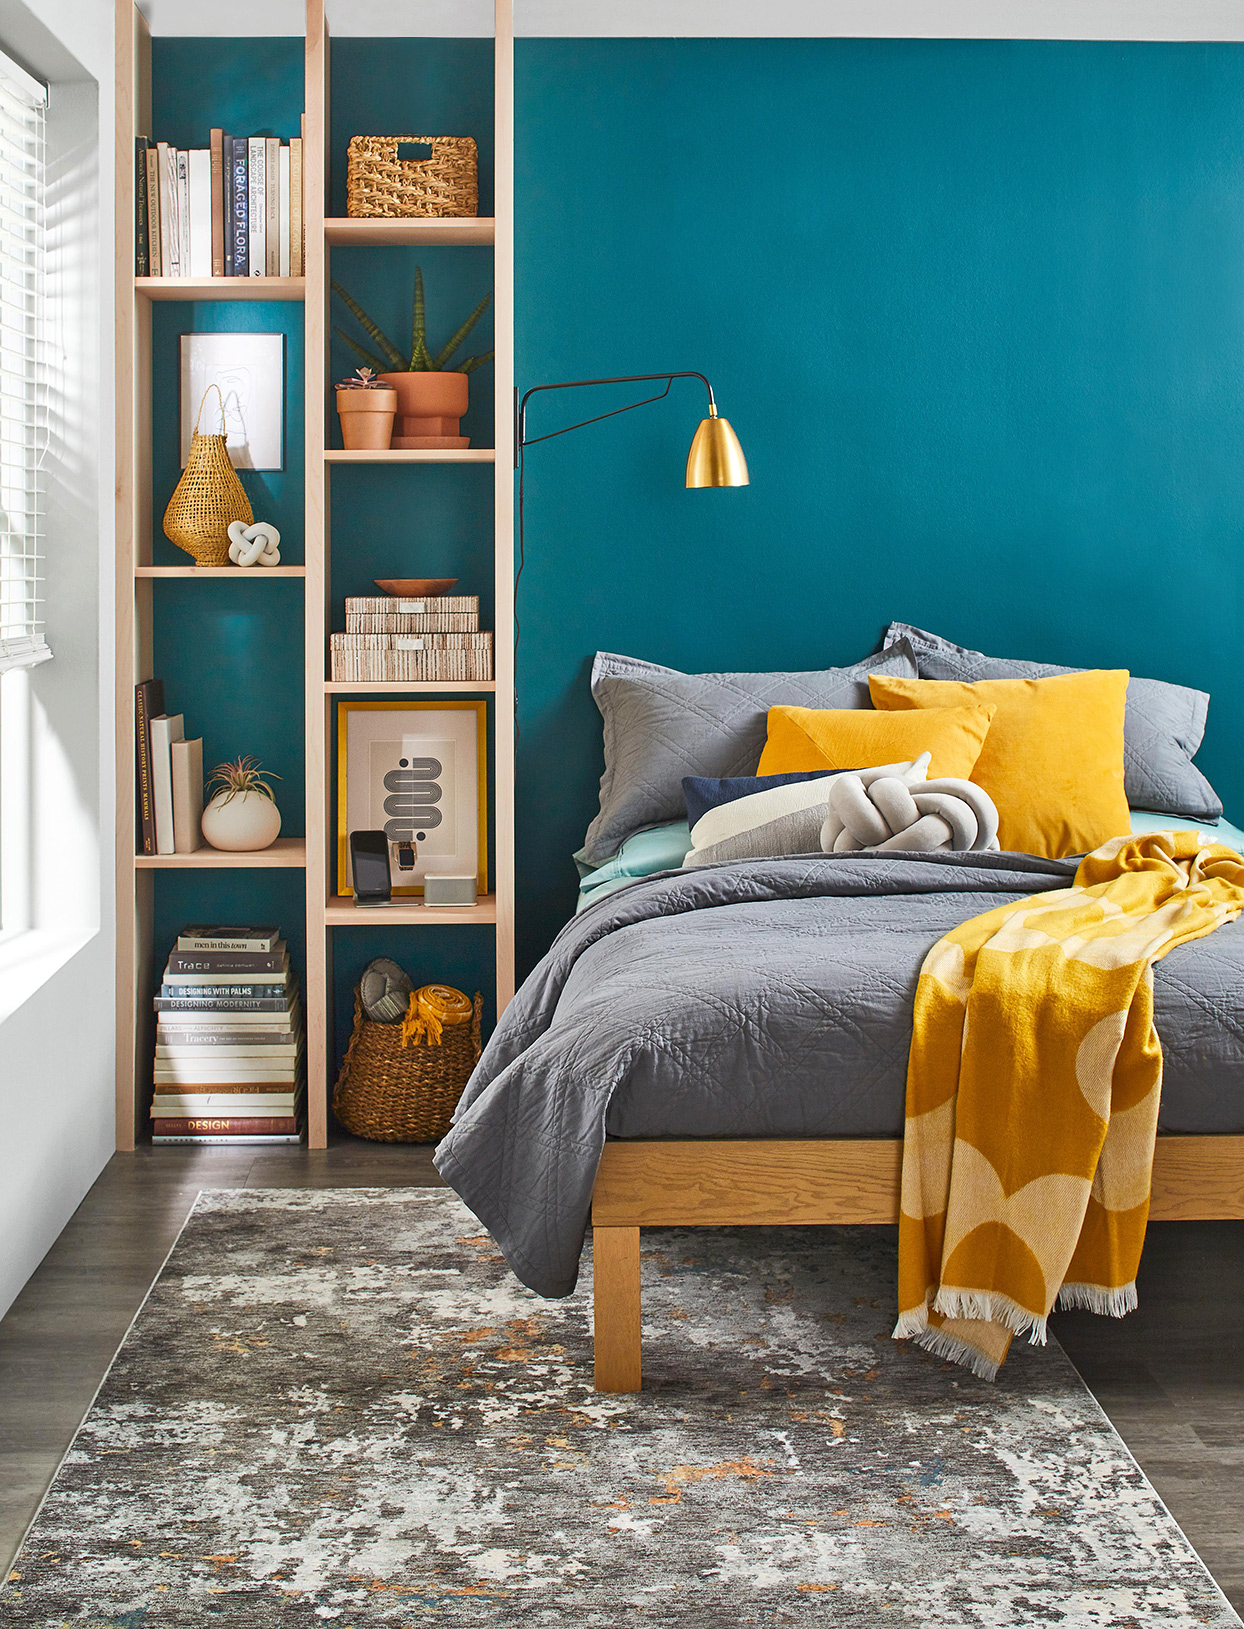 Bedroom Decorating And Design Ideas Better Homes Gardens